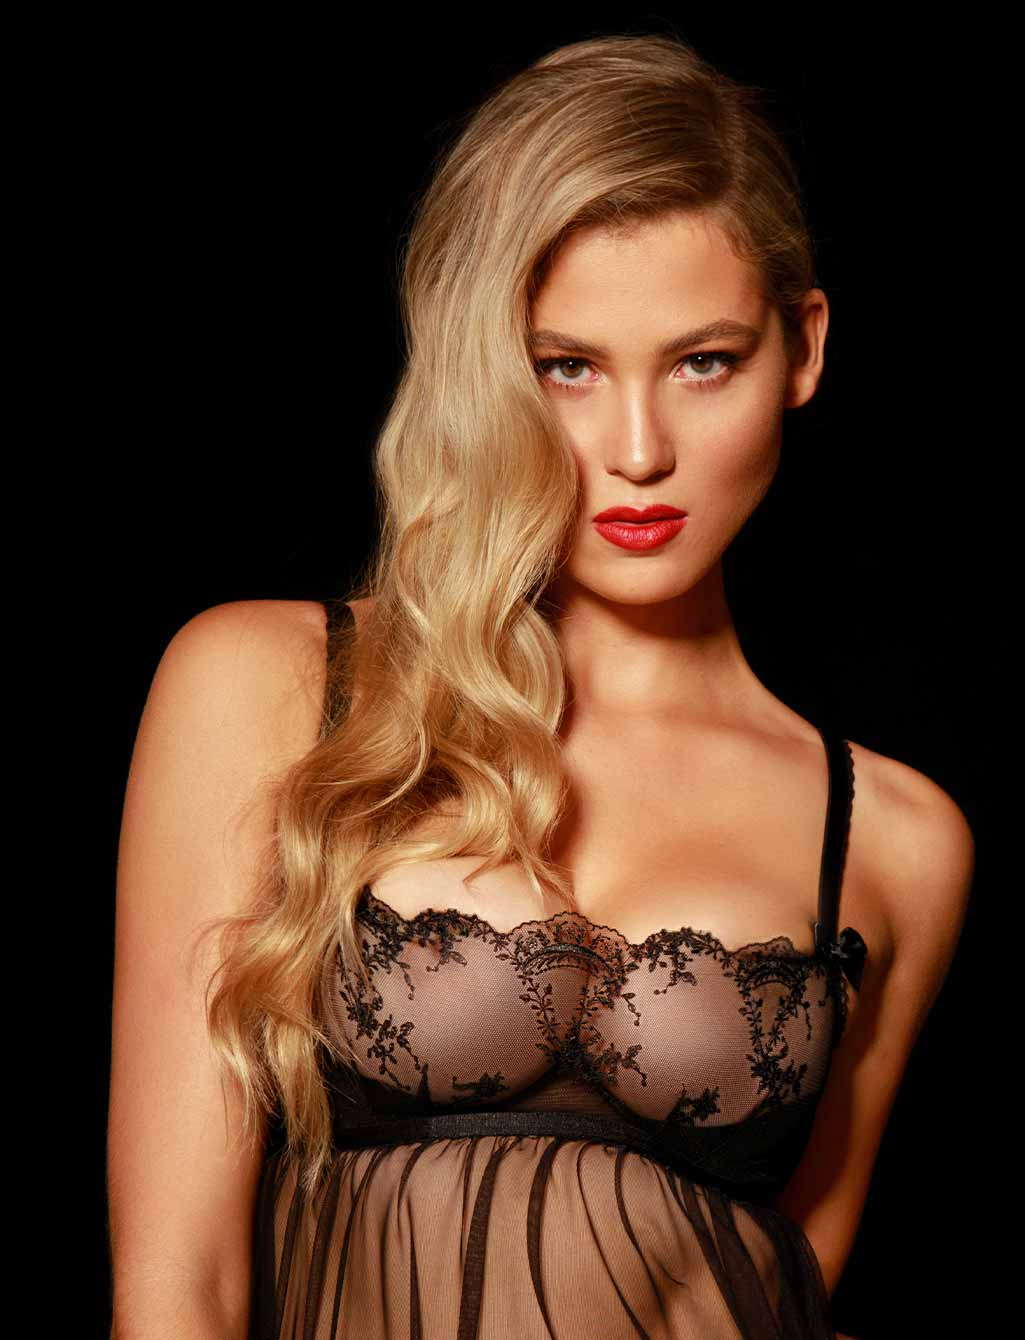 Layla Baby Doll Lace Black Lingerie Set | Shop  Lingerie Honey Birdette